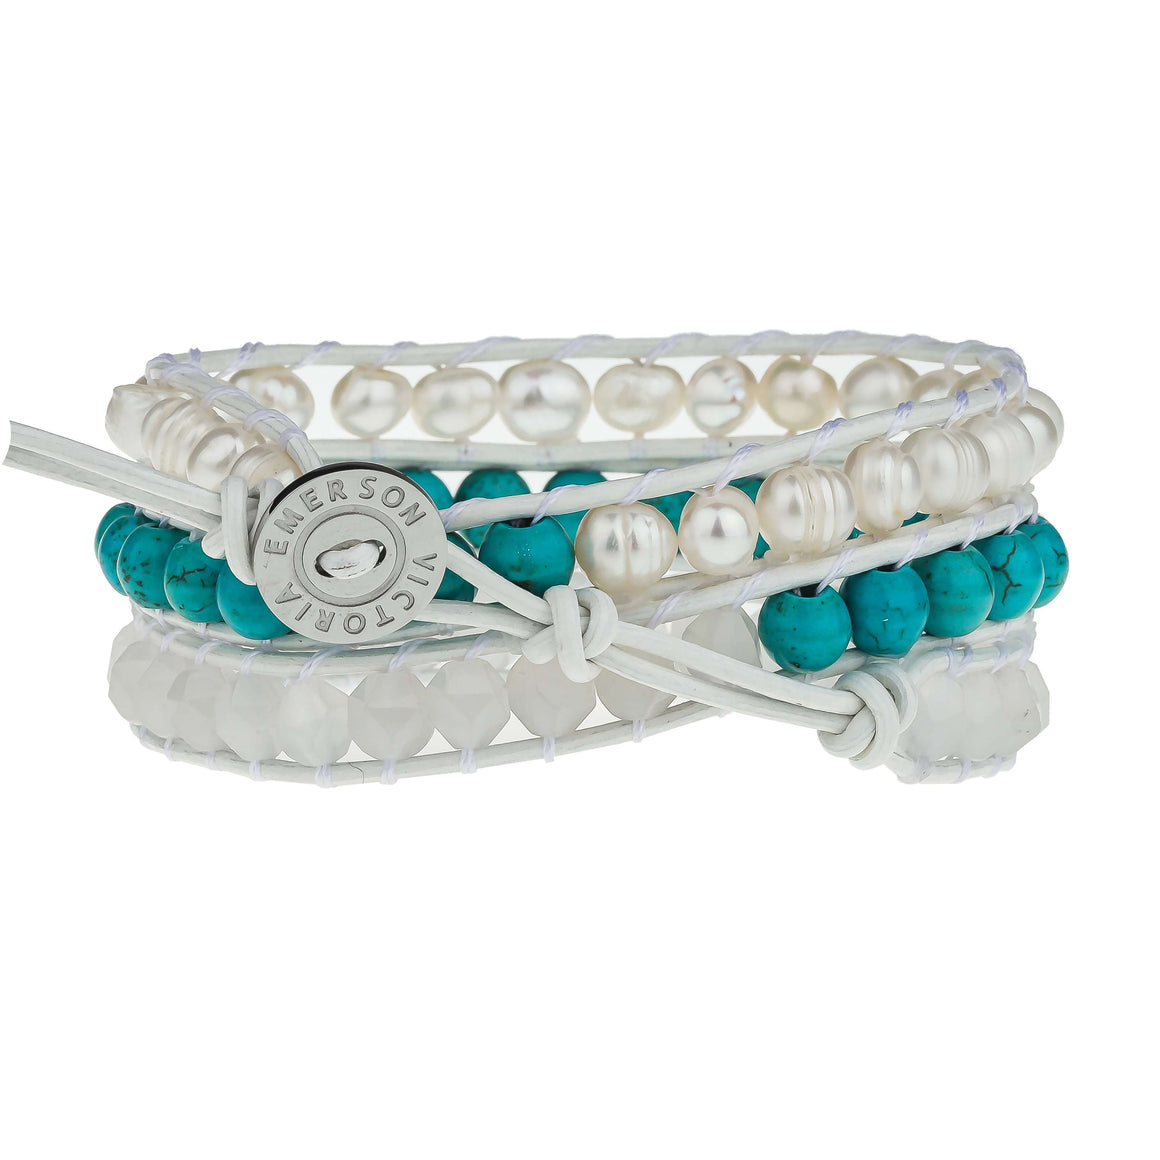 Freshwater Pearls and Turquoise on White